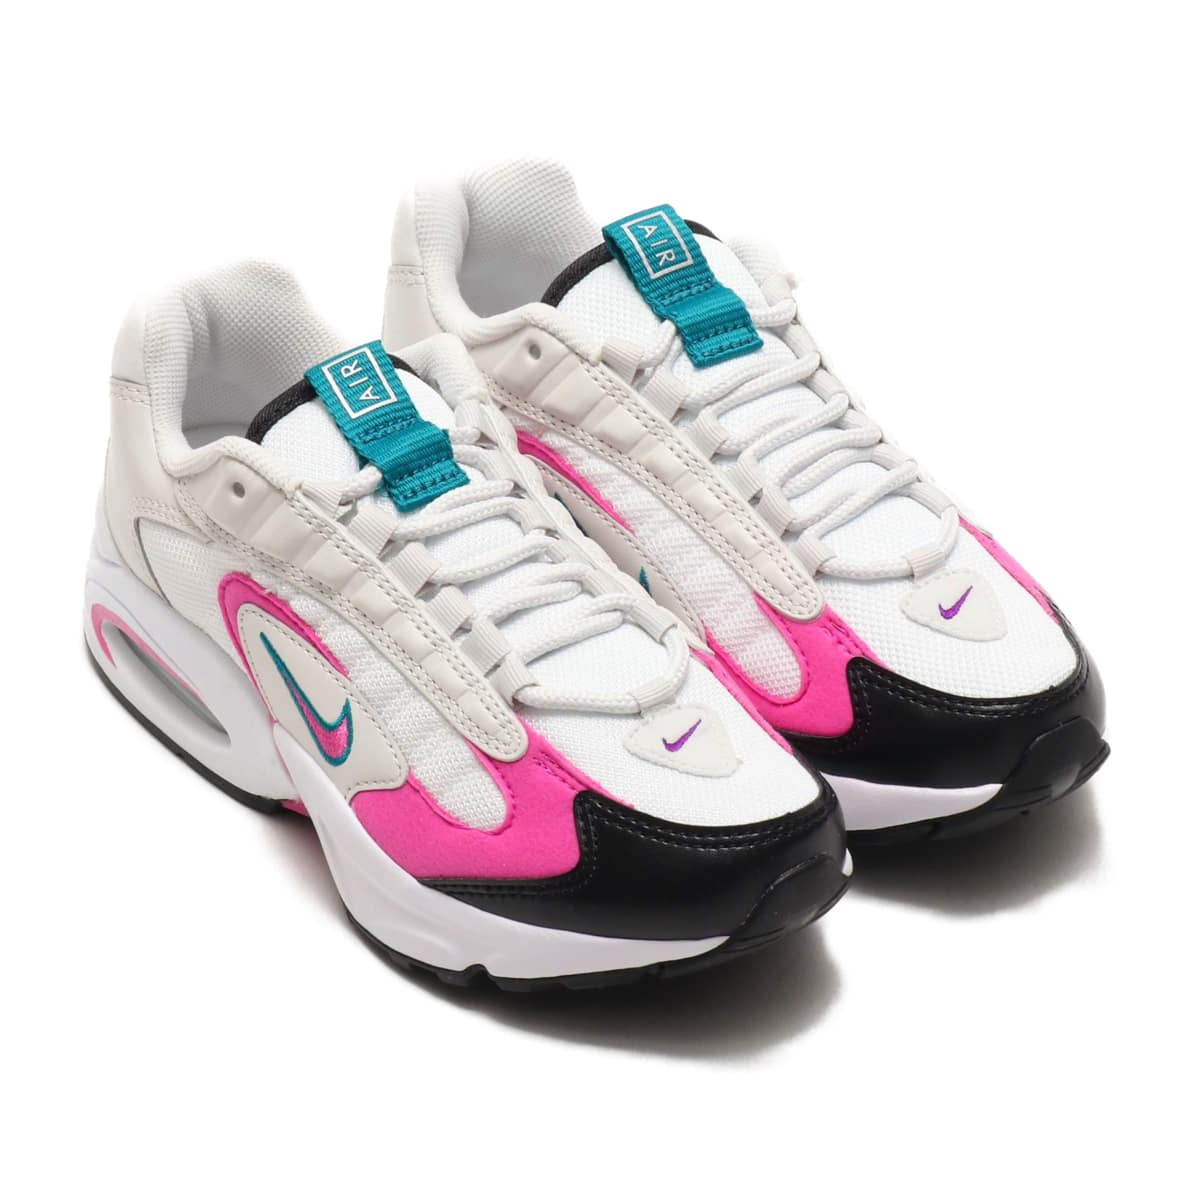 NIKE W AIR MAX TRIAX WHITE/ACTIVE FUCHSIA-BRIGHT SPRUCE 20SP-S_photo_large